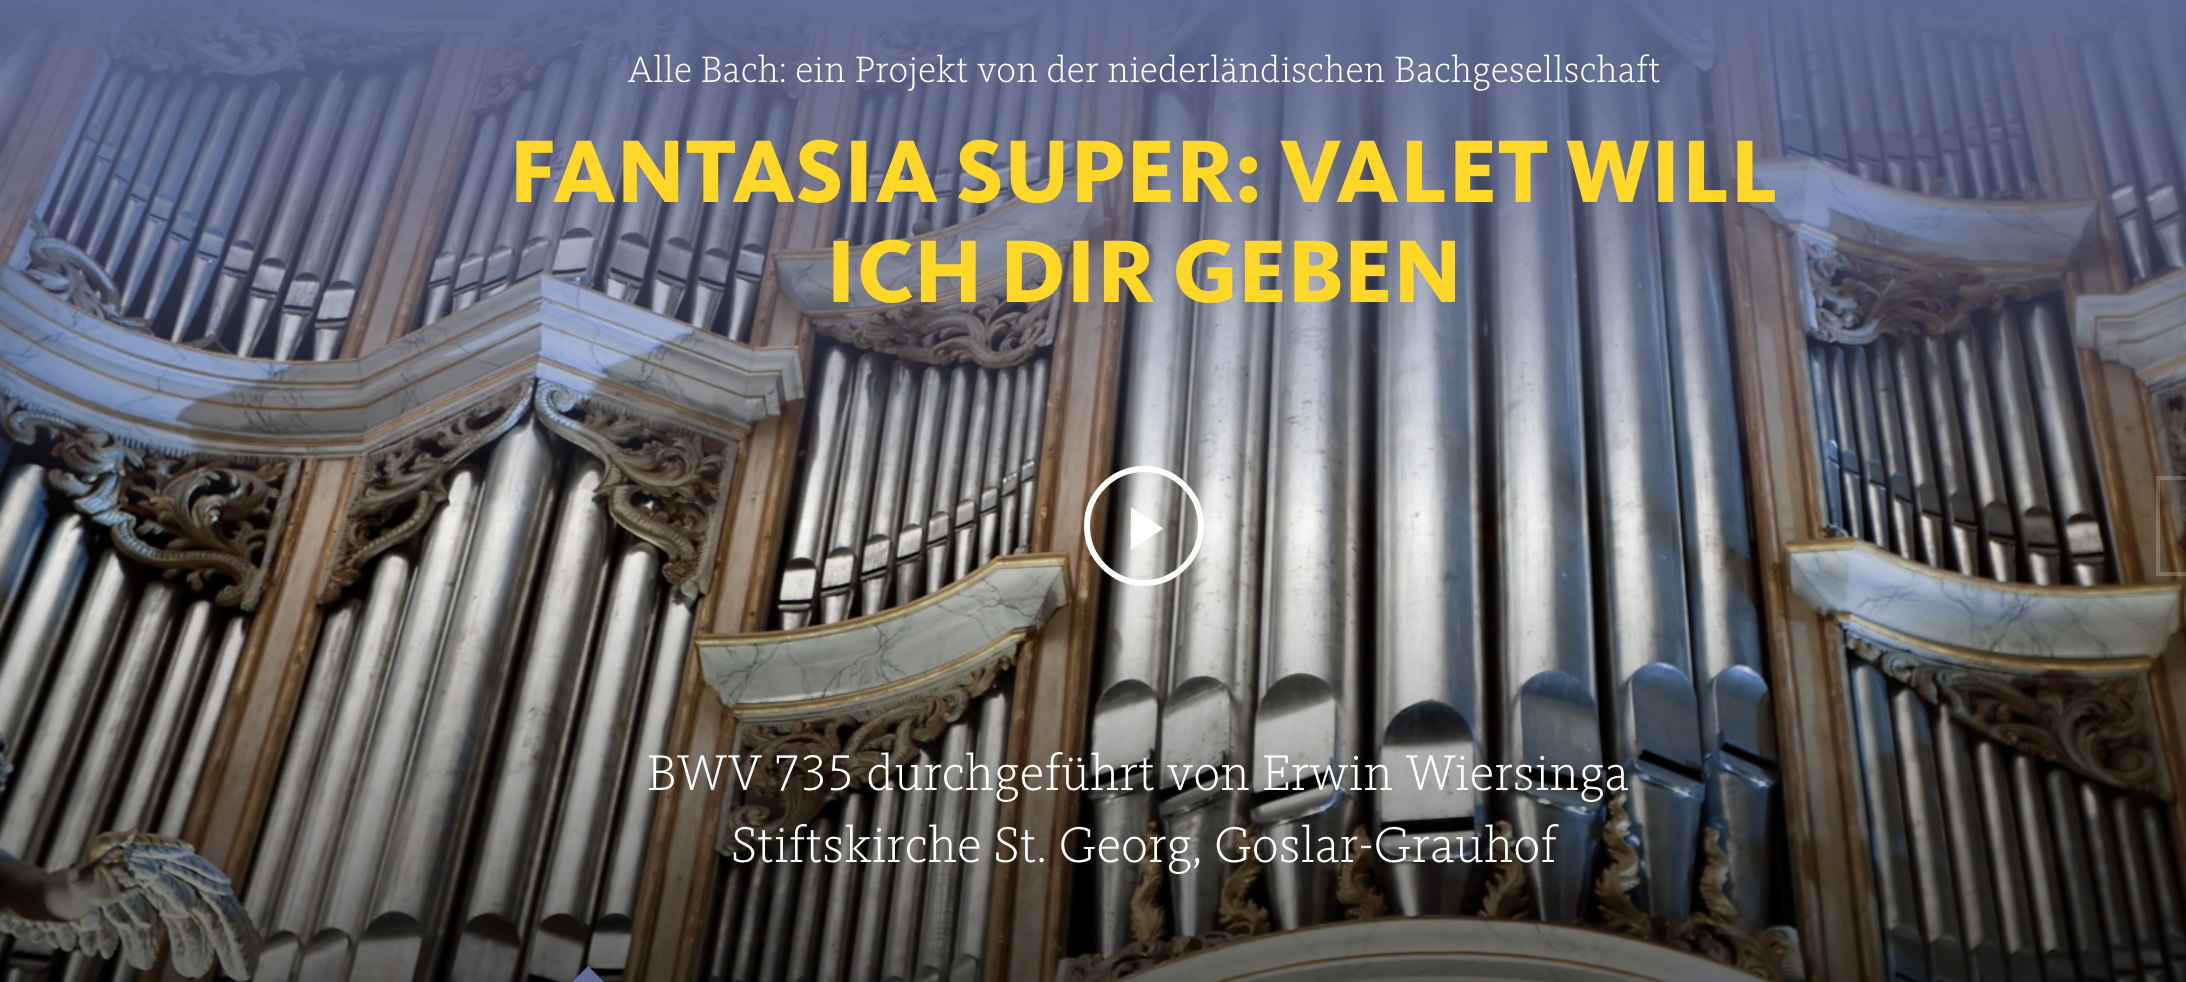 ALL OF BACH BWV 735